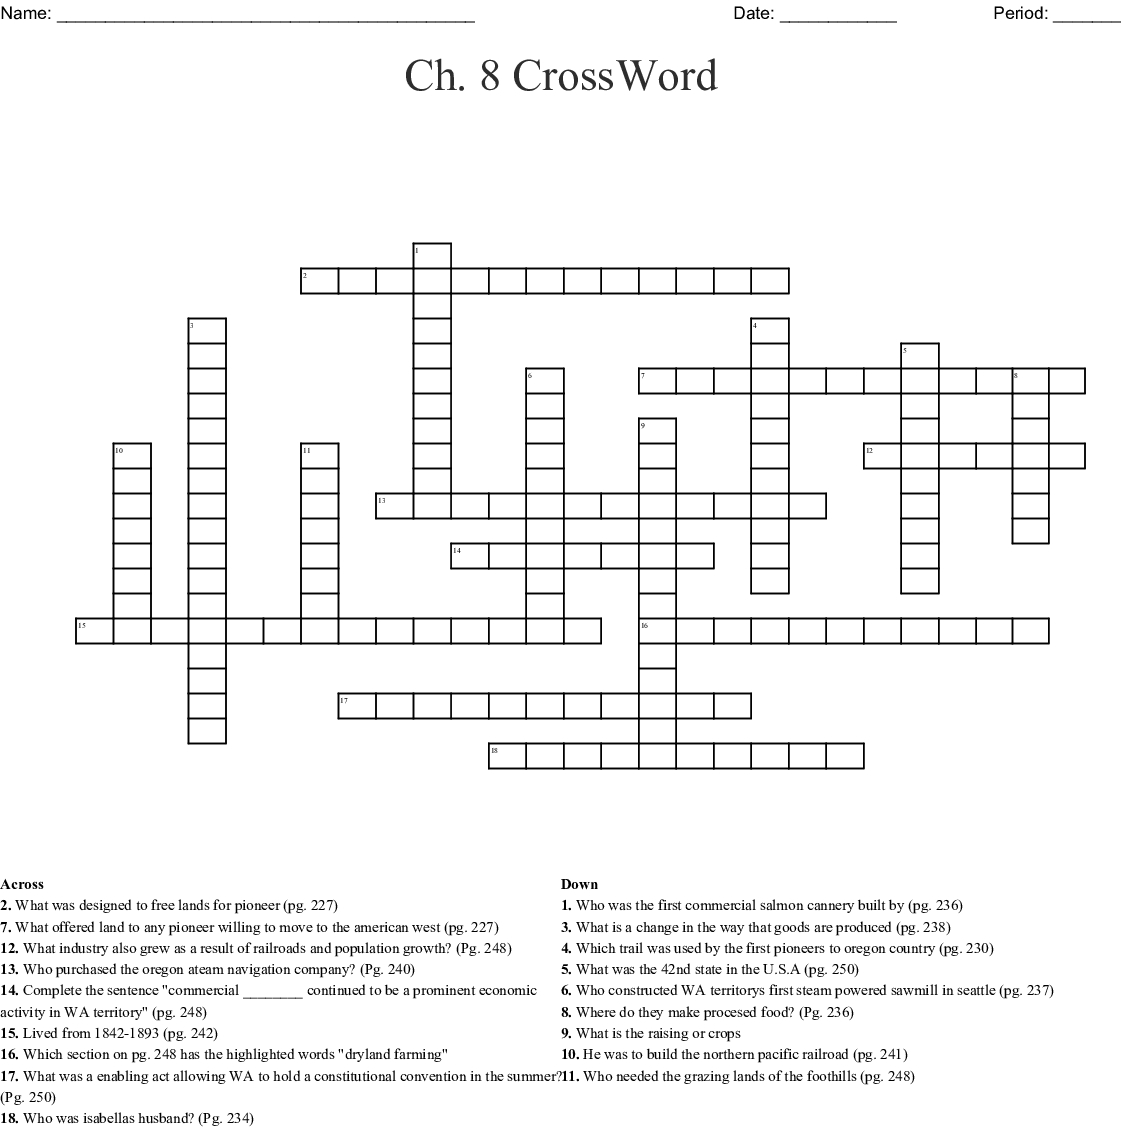 Ch. 8 Crossword – Wordmint Within Chapter 8 Crossword Puzzle Us - History Crossword Puzzles Printable